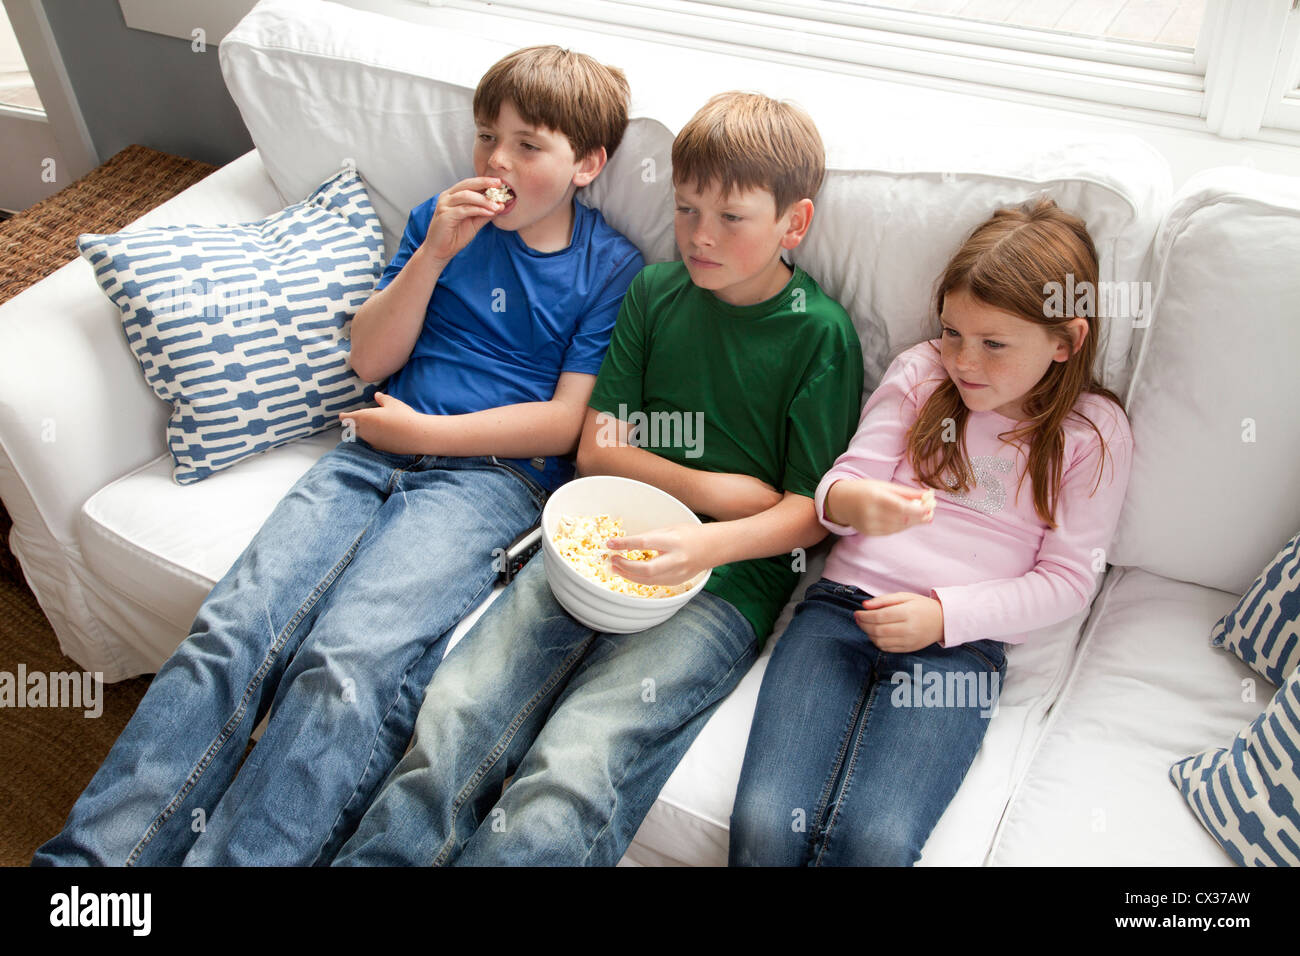 Three kids are sitting on the couch watching tv and eating popcorn. - Stock Image